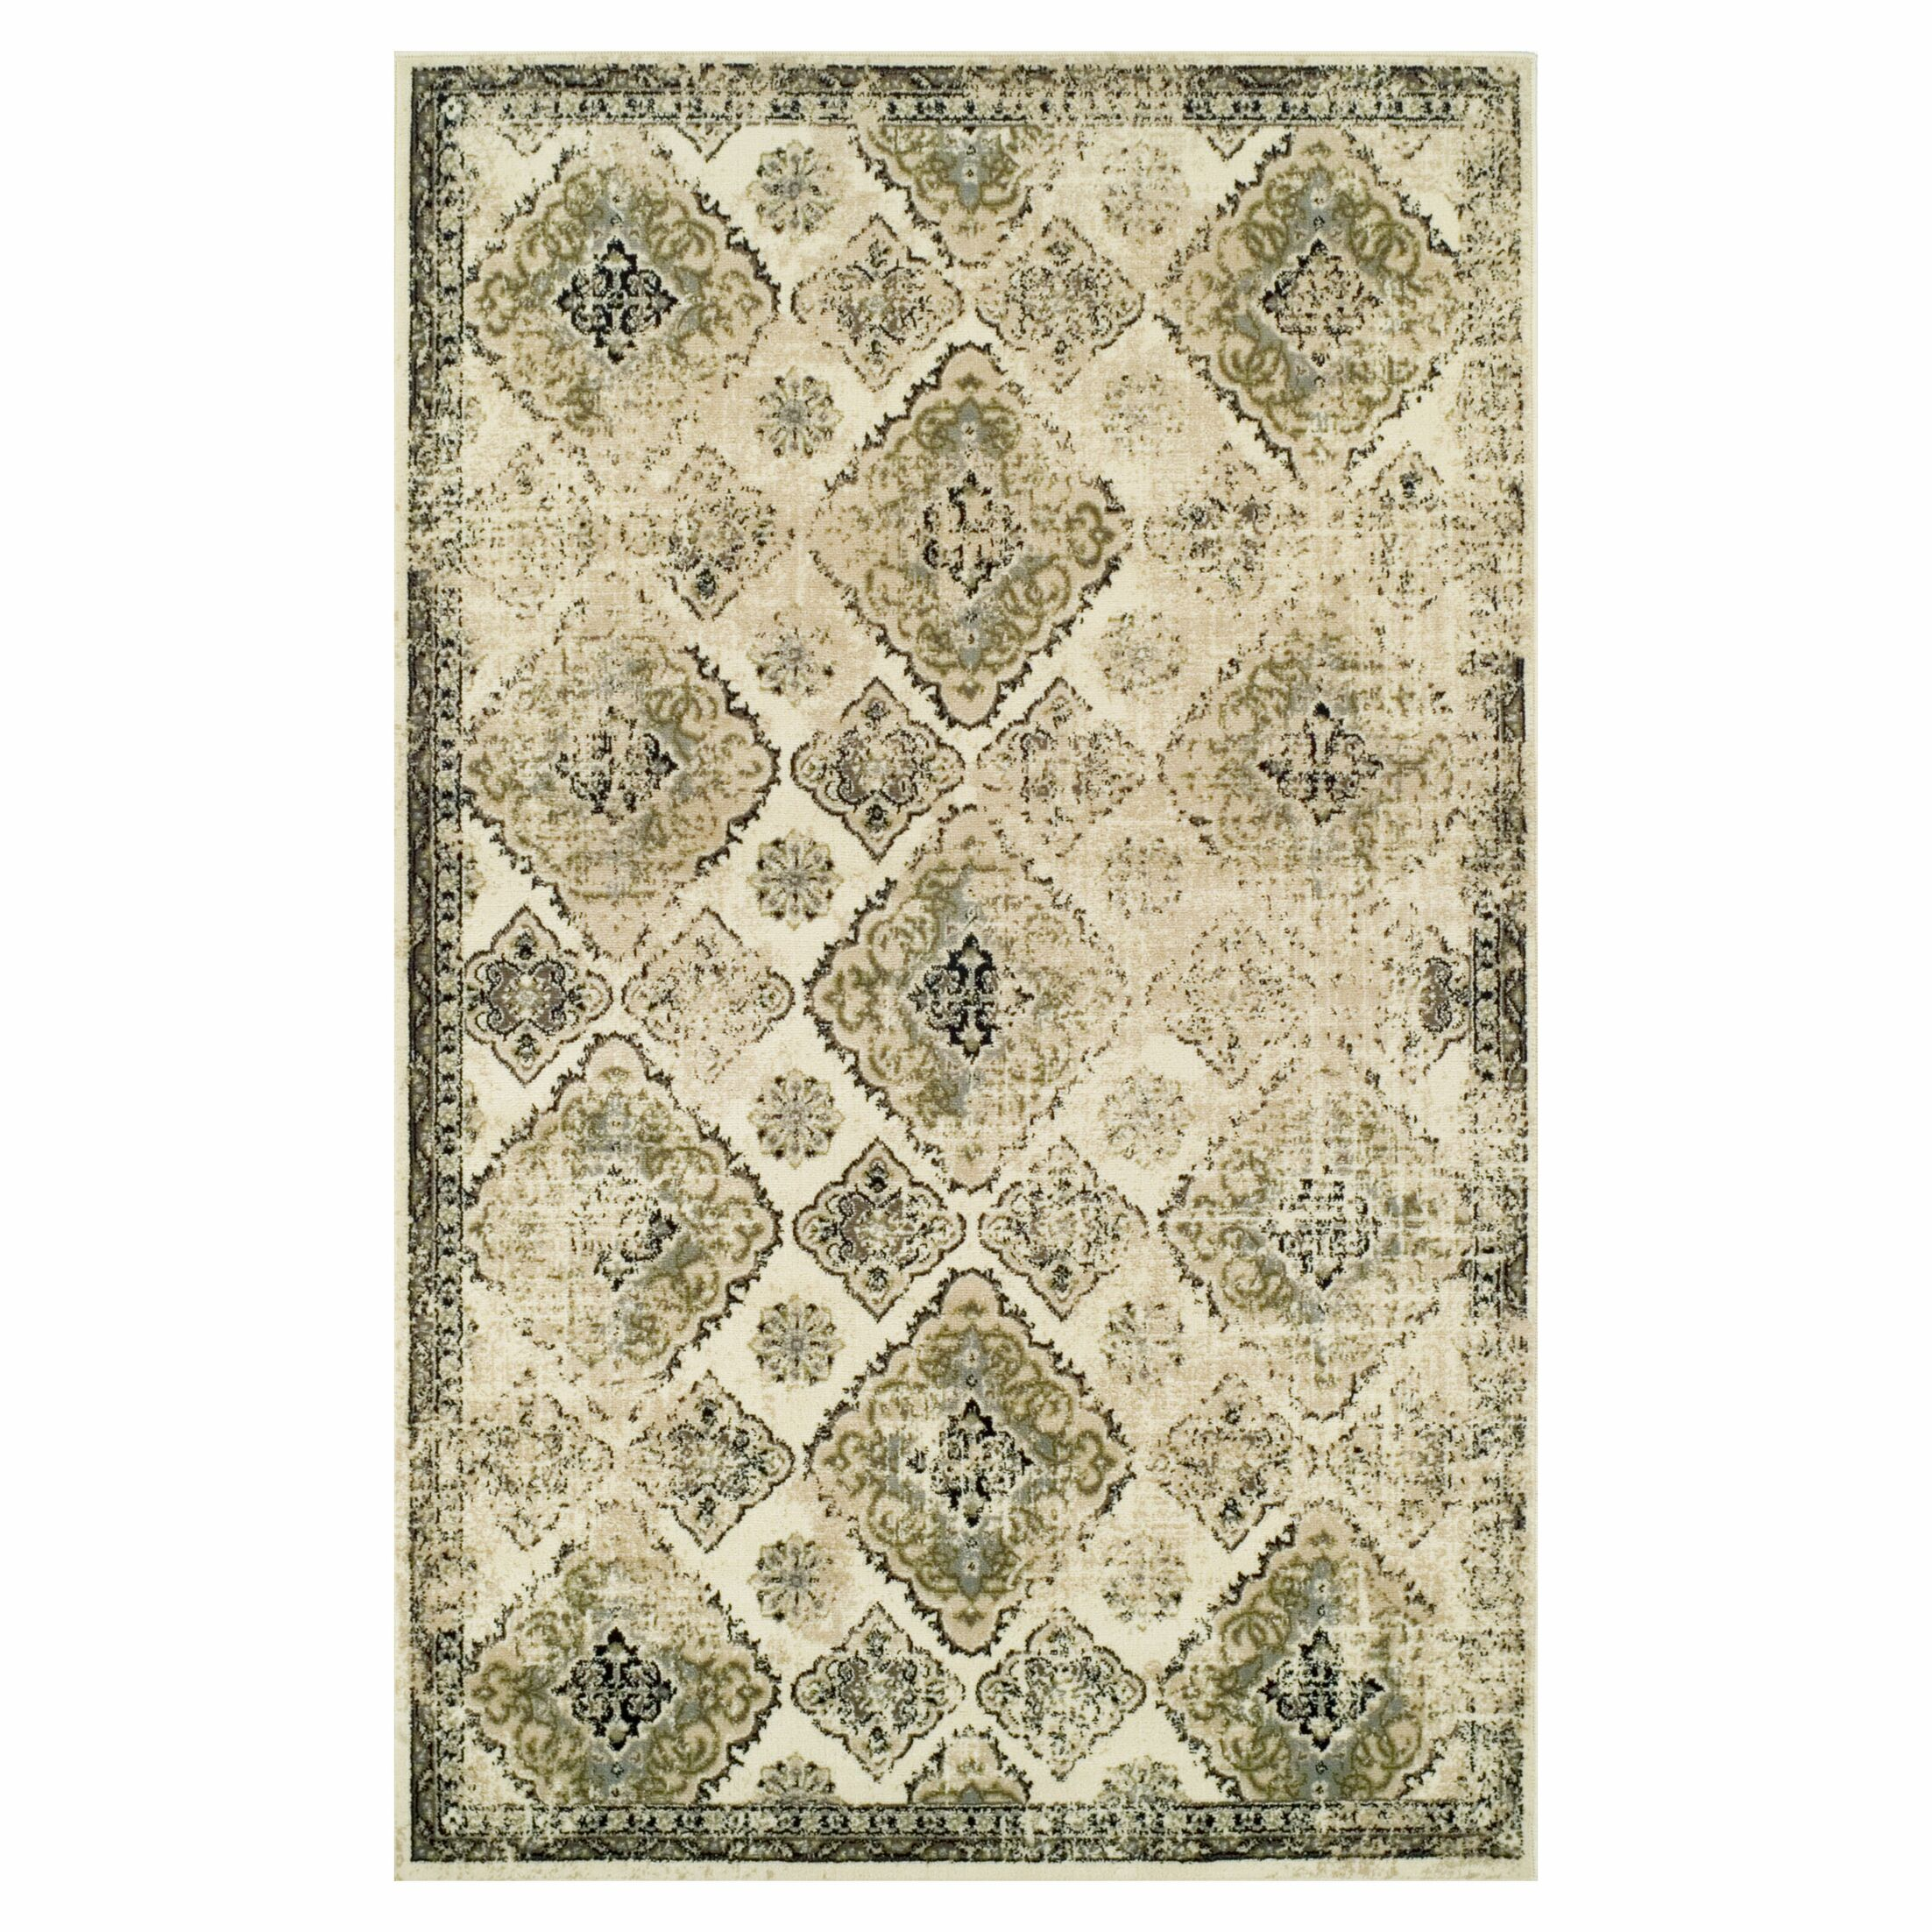 Hargrave Green/Beige Area Rug Rug Size: Rectangle 8' x 10'